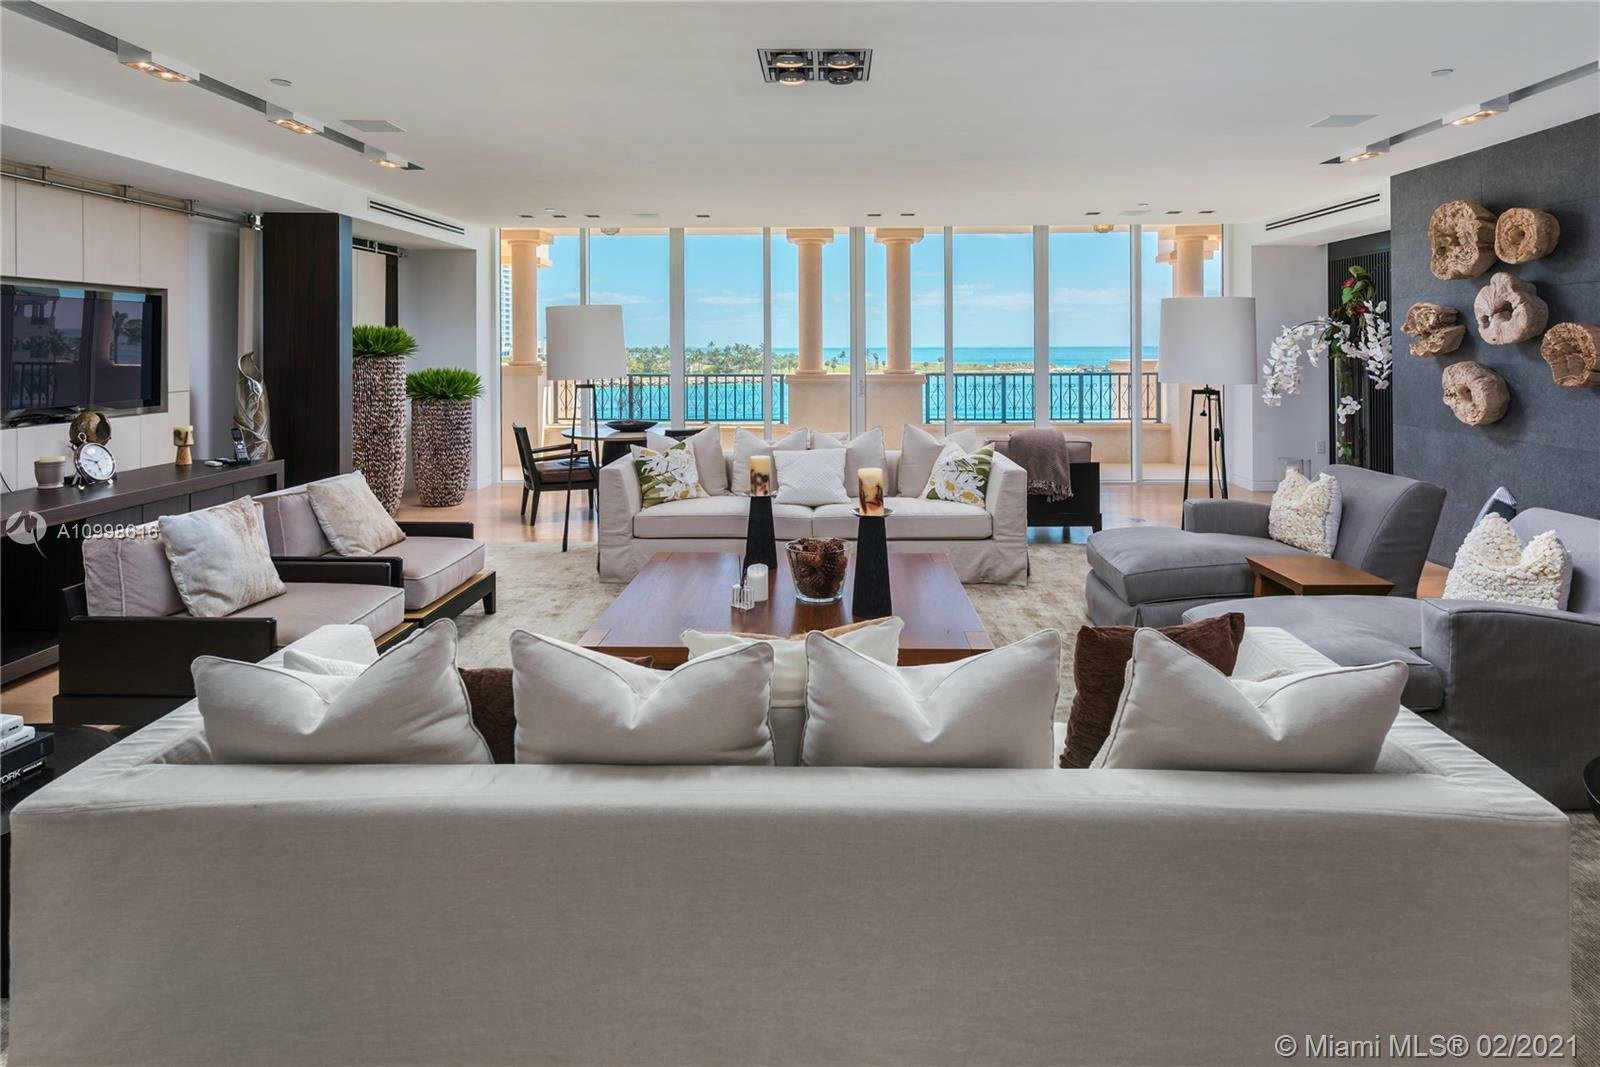 Condo in Miami Beach, Florida, United States 1